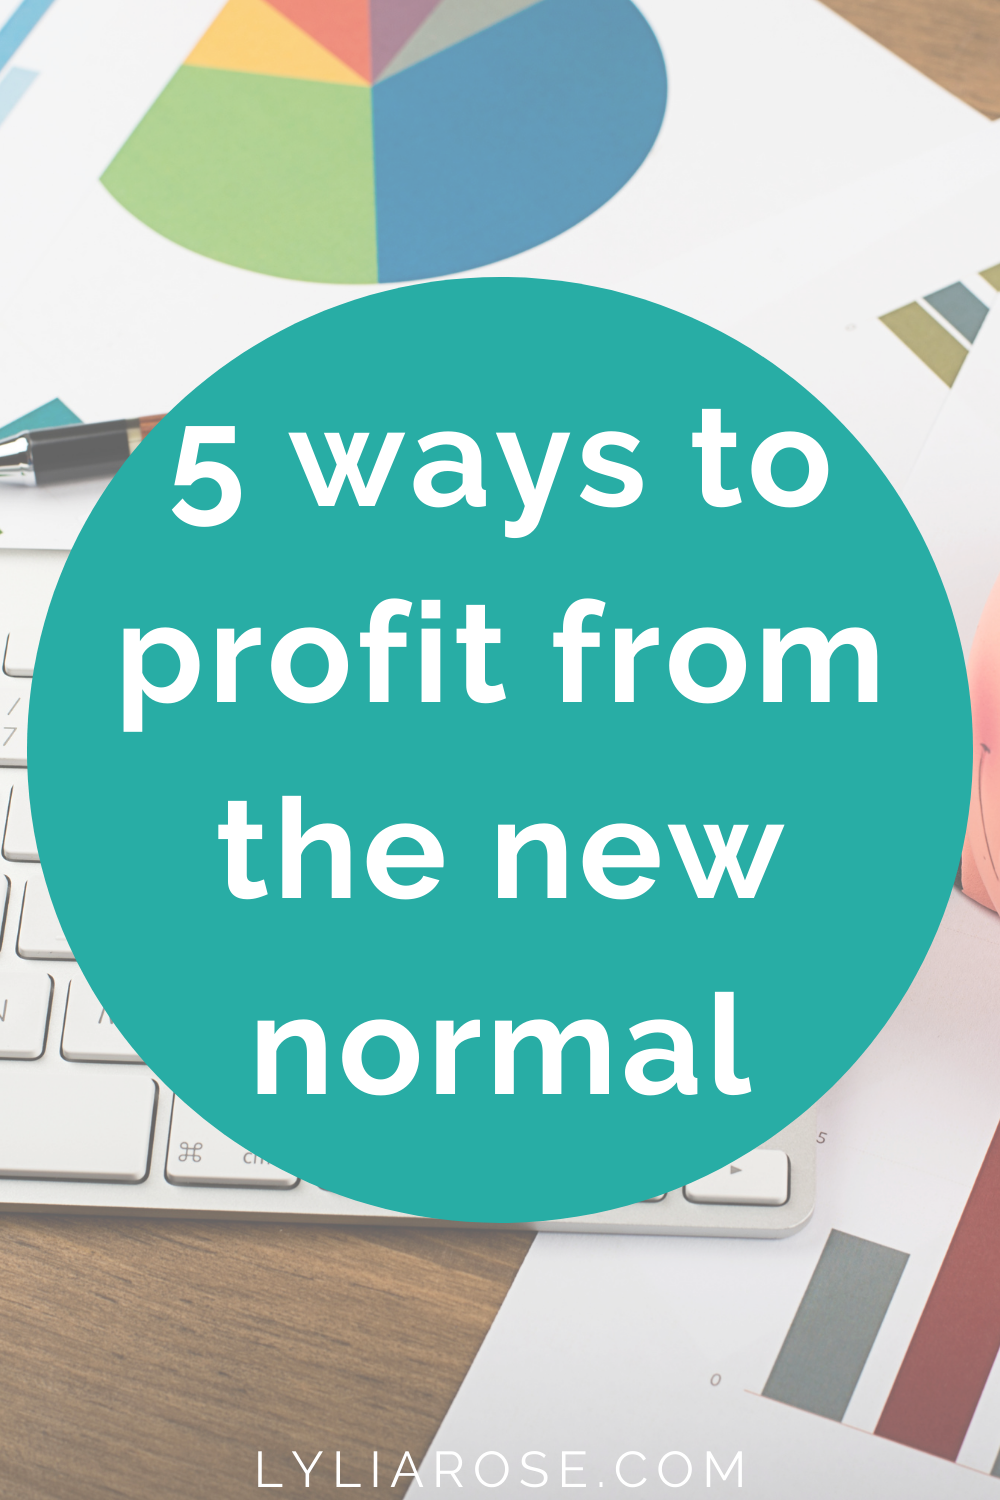 5 ways to profit from the new normal